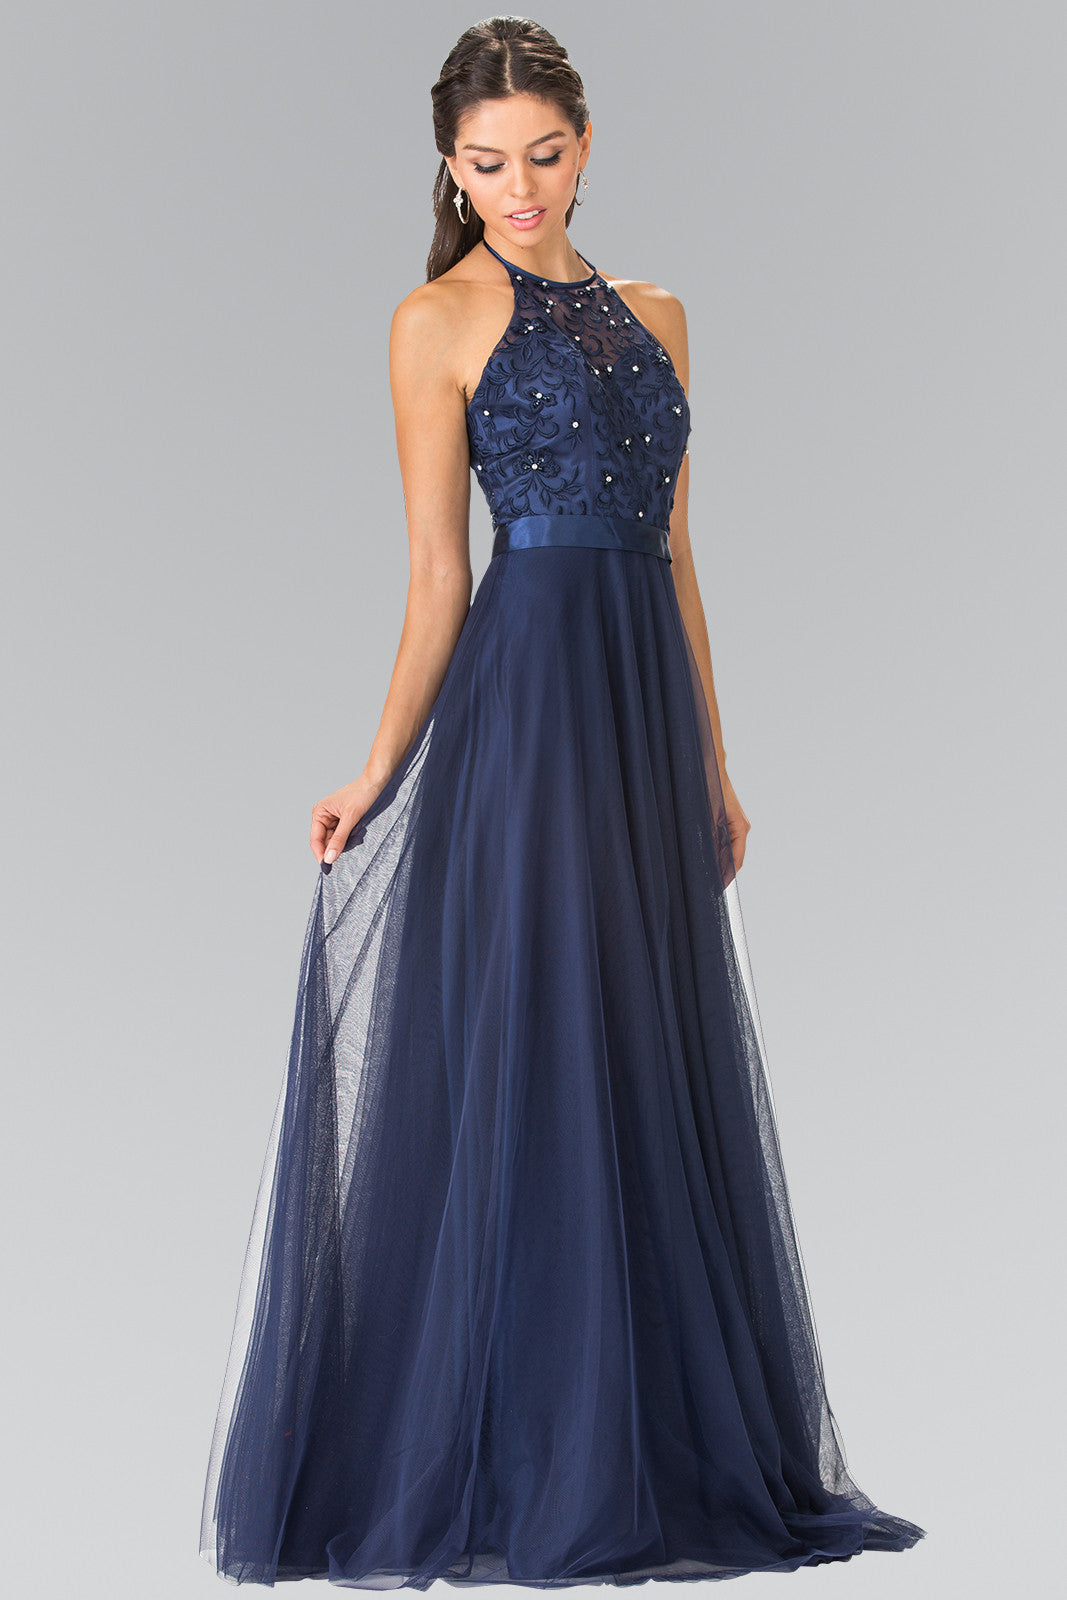 Affordable bridesmaid dresses long chiffon dresses simply fab sparkling beaded bodice long bridesmaid dress gl1475sku fabgl1475gorgeous sparkling beaded bodice long bridesmaid dress featuring flowing soft tulle skirt ombrellifo Gallery